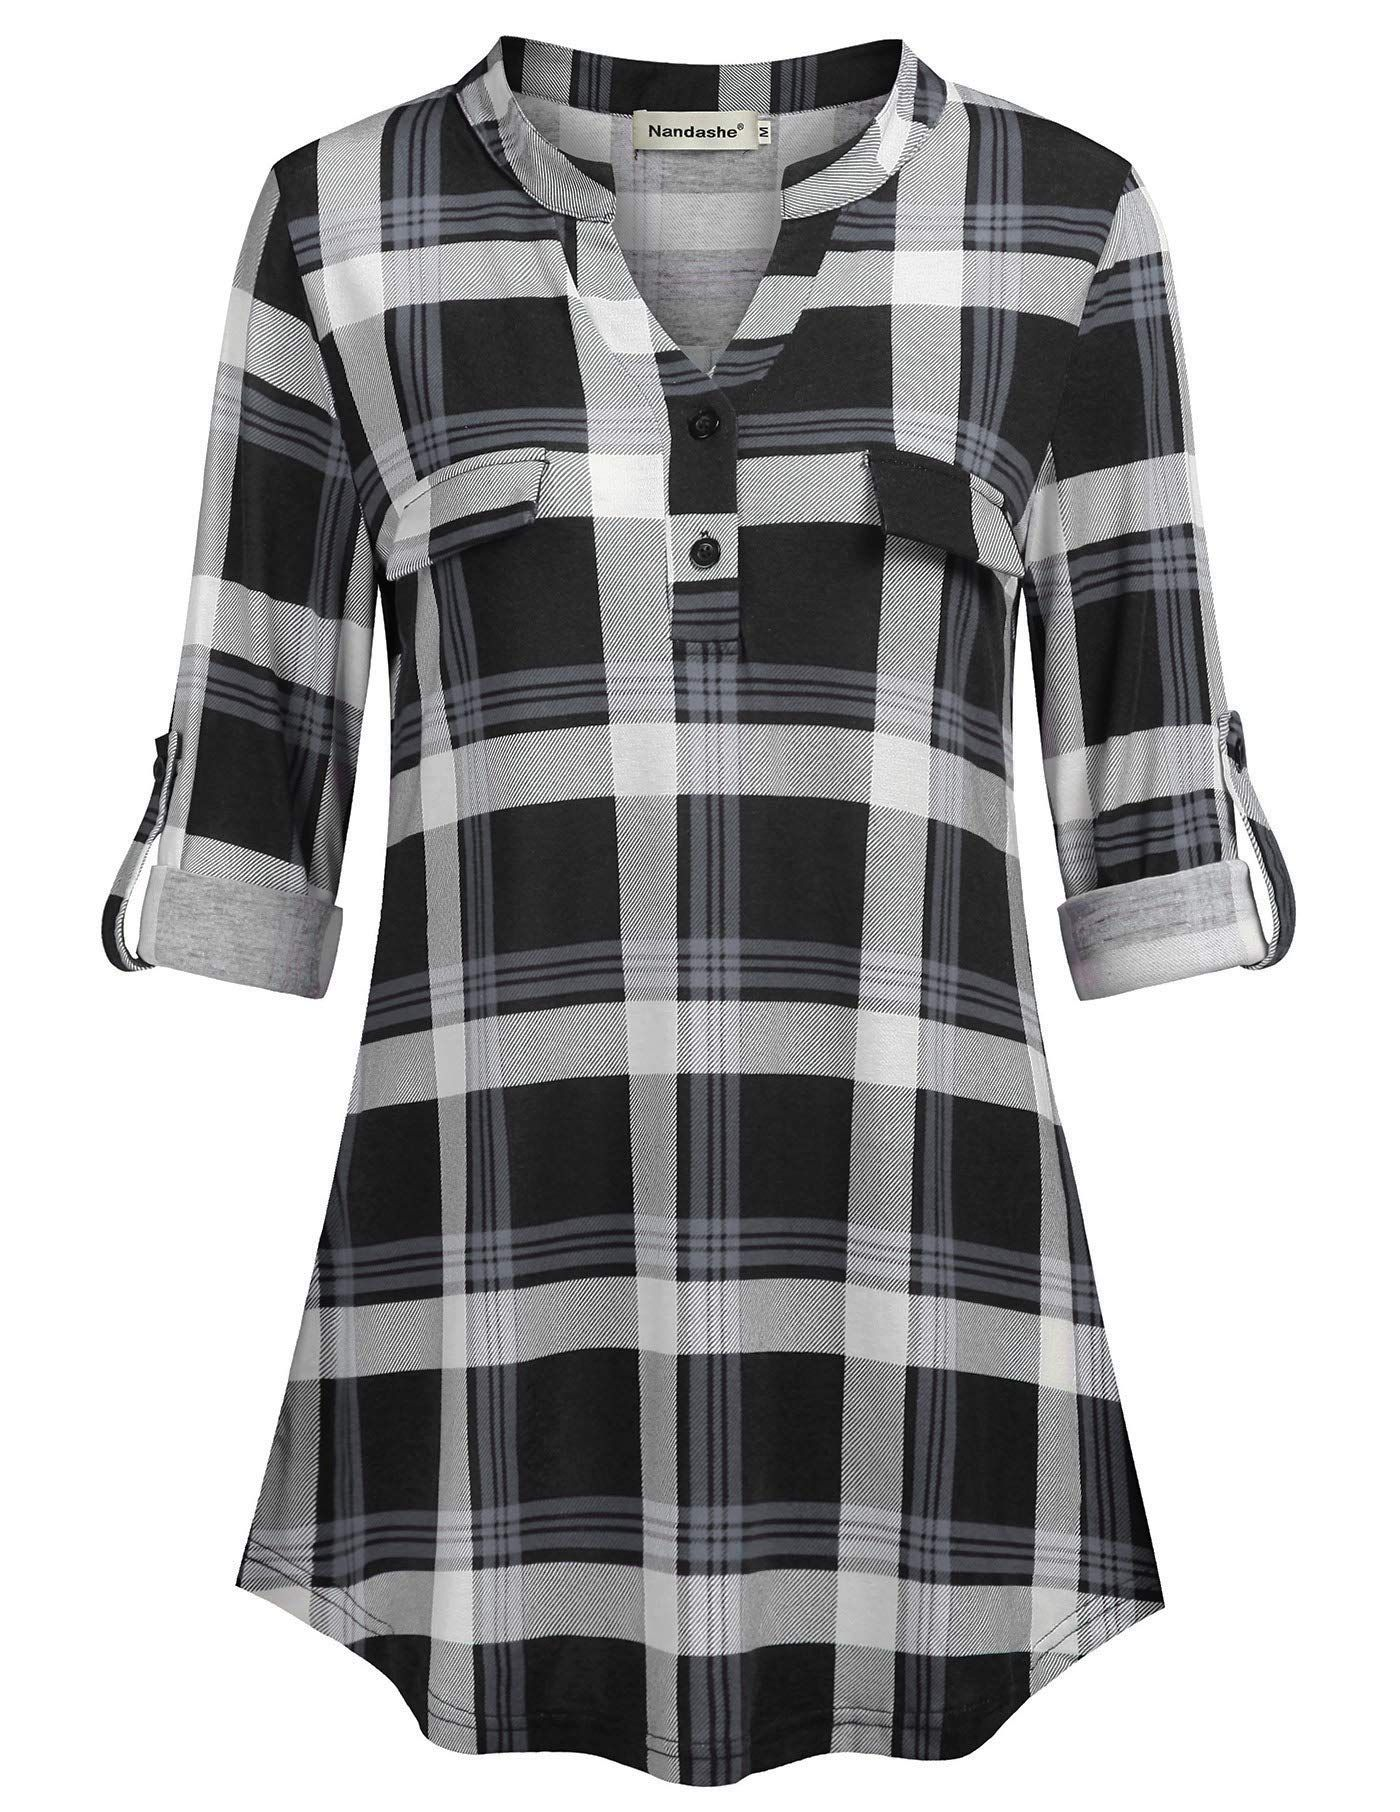 02dde95a20b8ca Nandashe Womens 3/4 Roll Sleeve Shirt V Neck Button Down Blouse Loose Tunic  Tops price($): 14.99~ brand: Nandashe ,sold by Nandashe 4.4 out of 5 stars  via ...